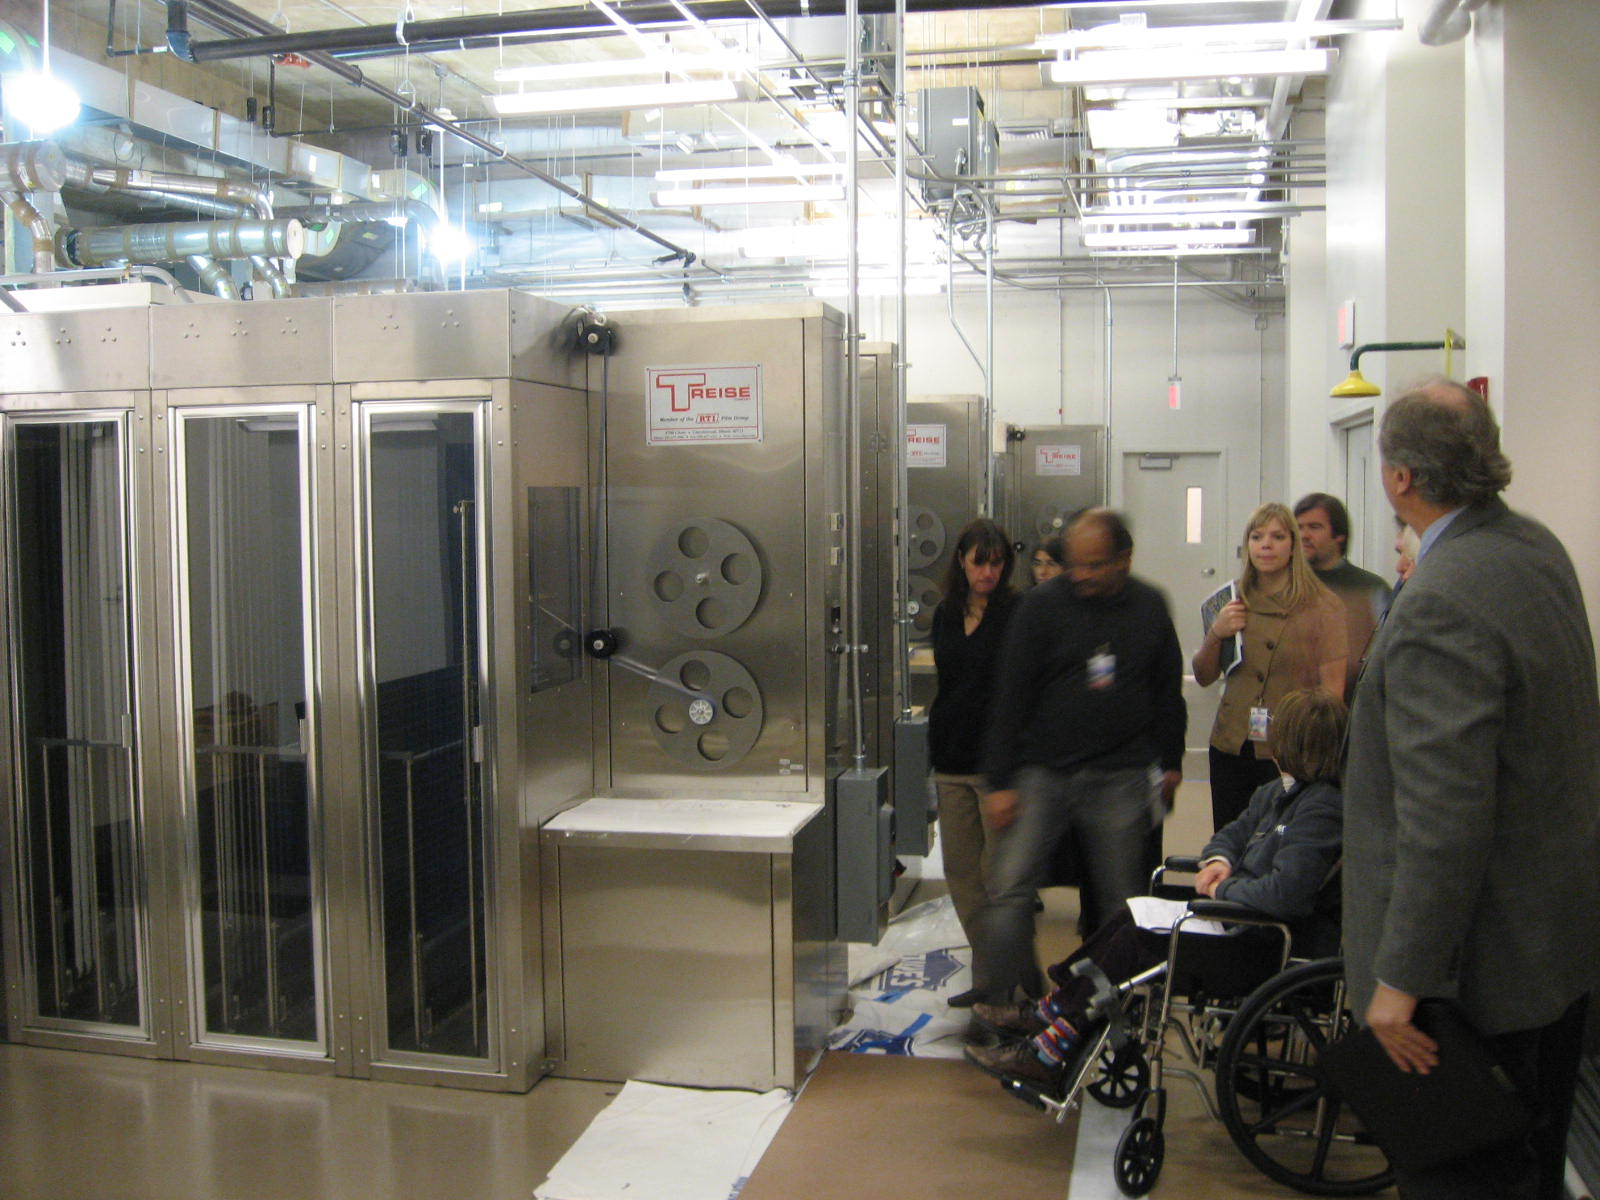 PDPTV team visits the new Library of Congress National Audiovisual Conservation Center in 2008